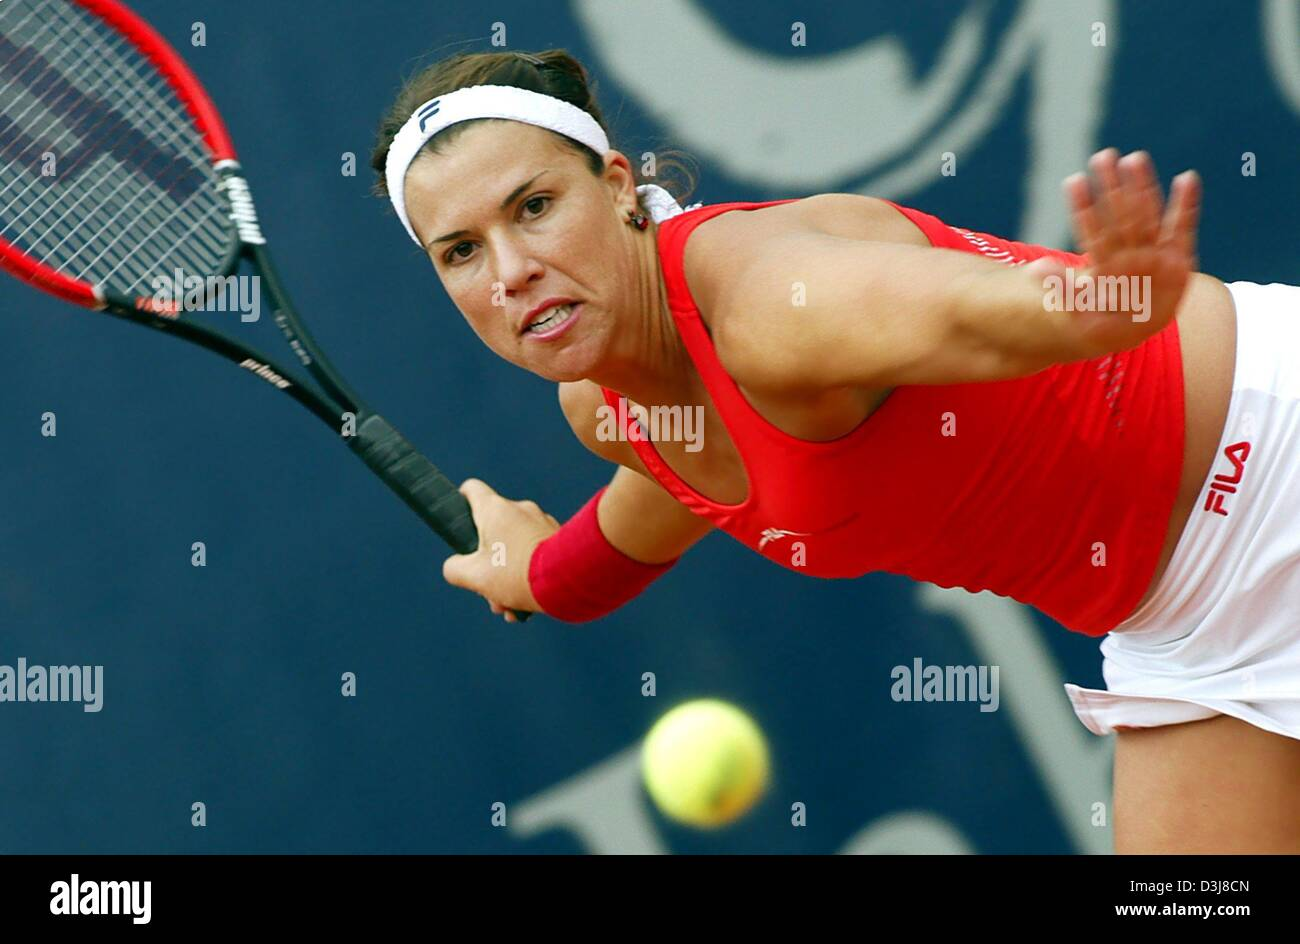 dpa US tennis player Jennifer Capriati hits a forehand during